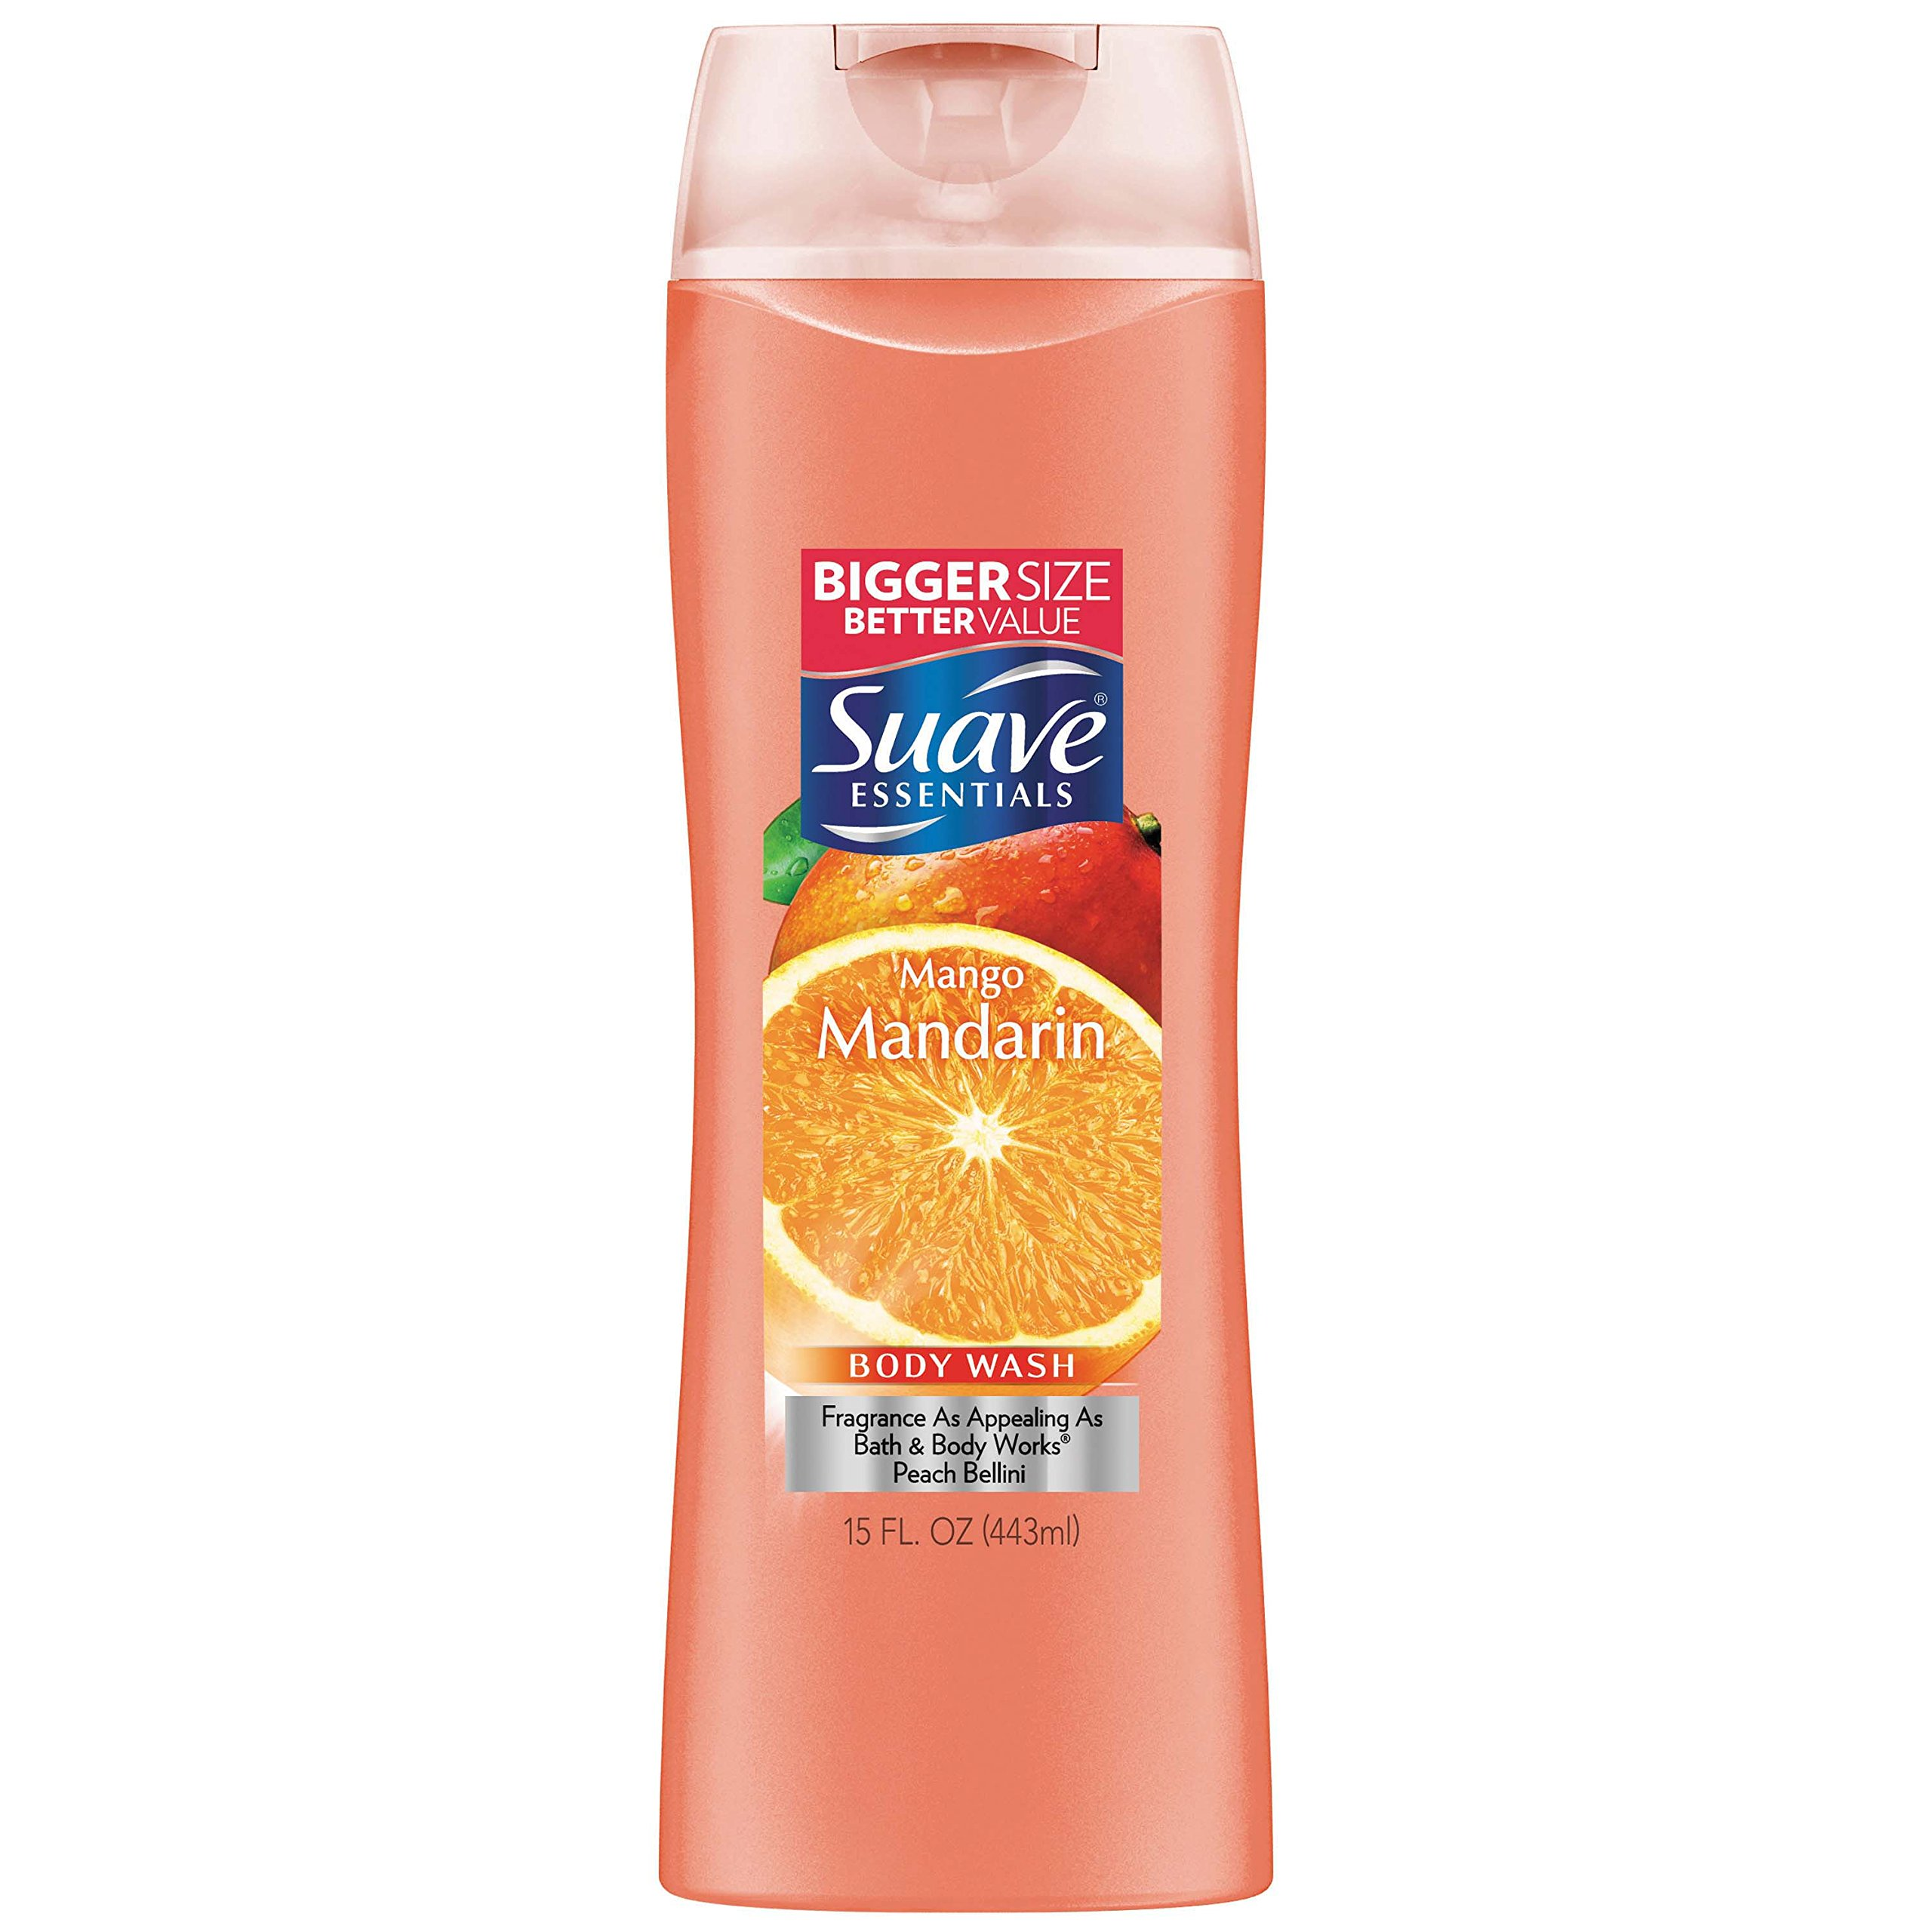 Suave Essentials Body Wash, Mango Mandarin 15 oz (Pack of 6)